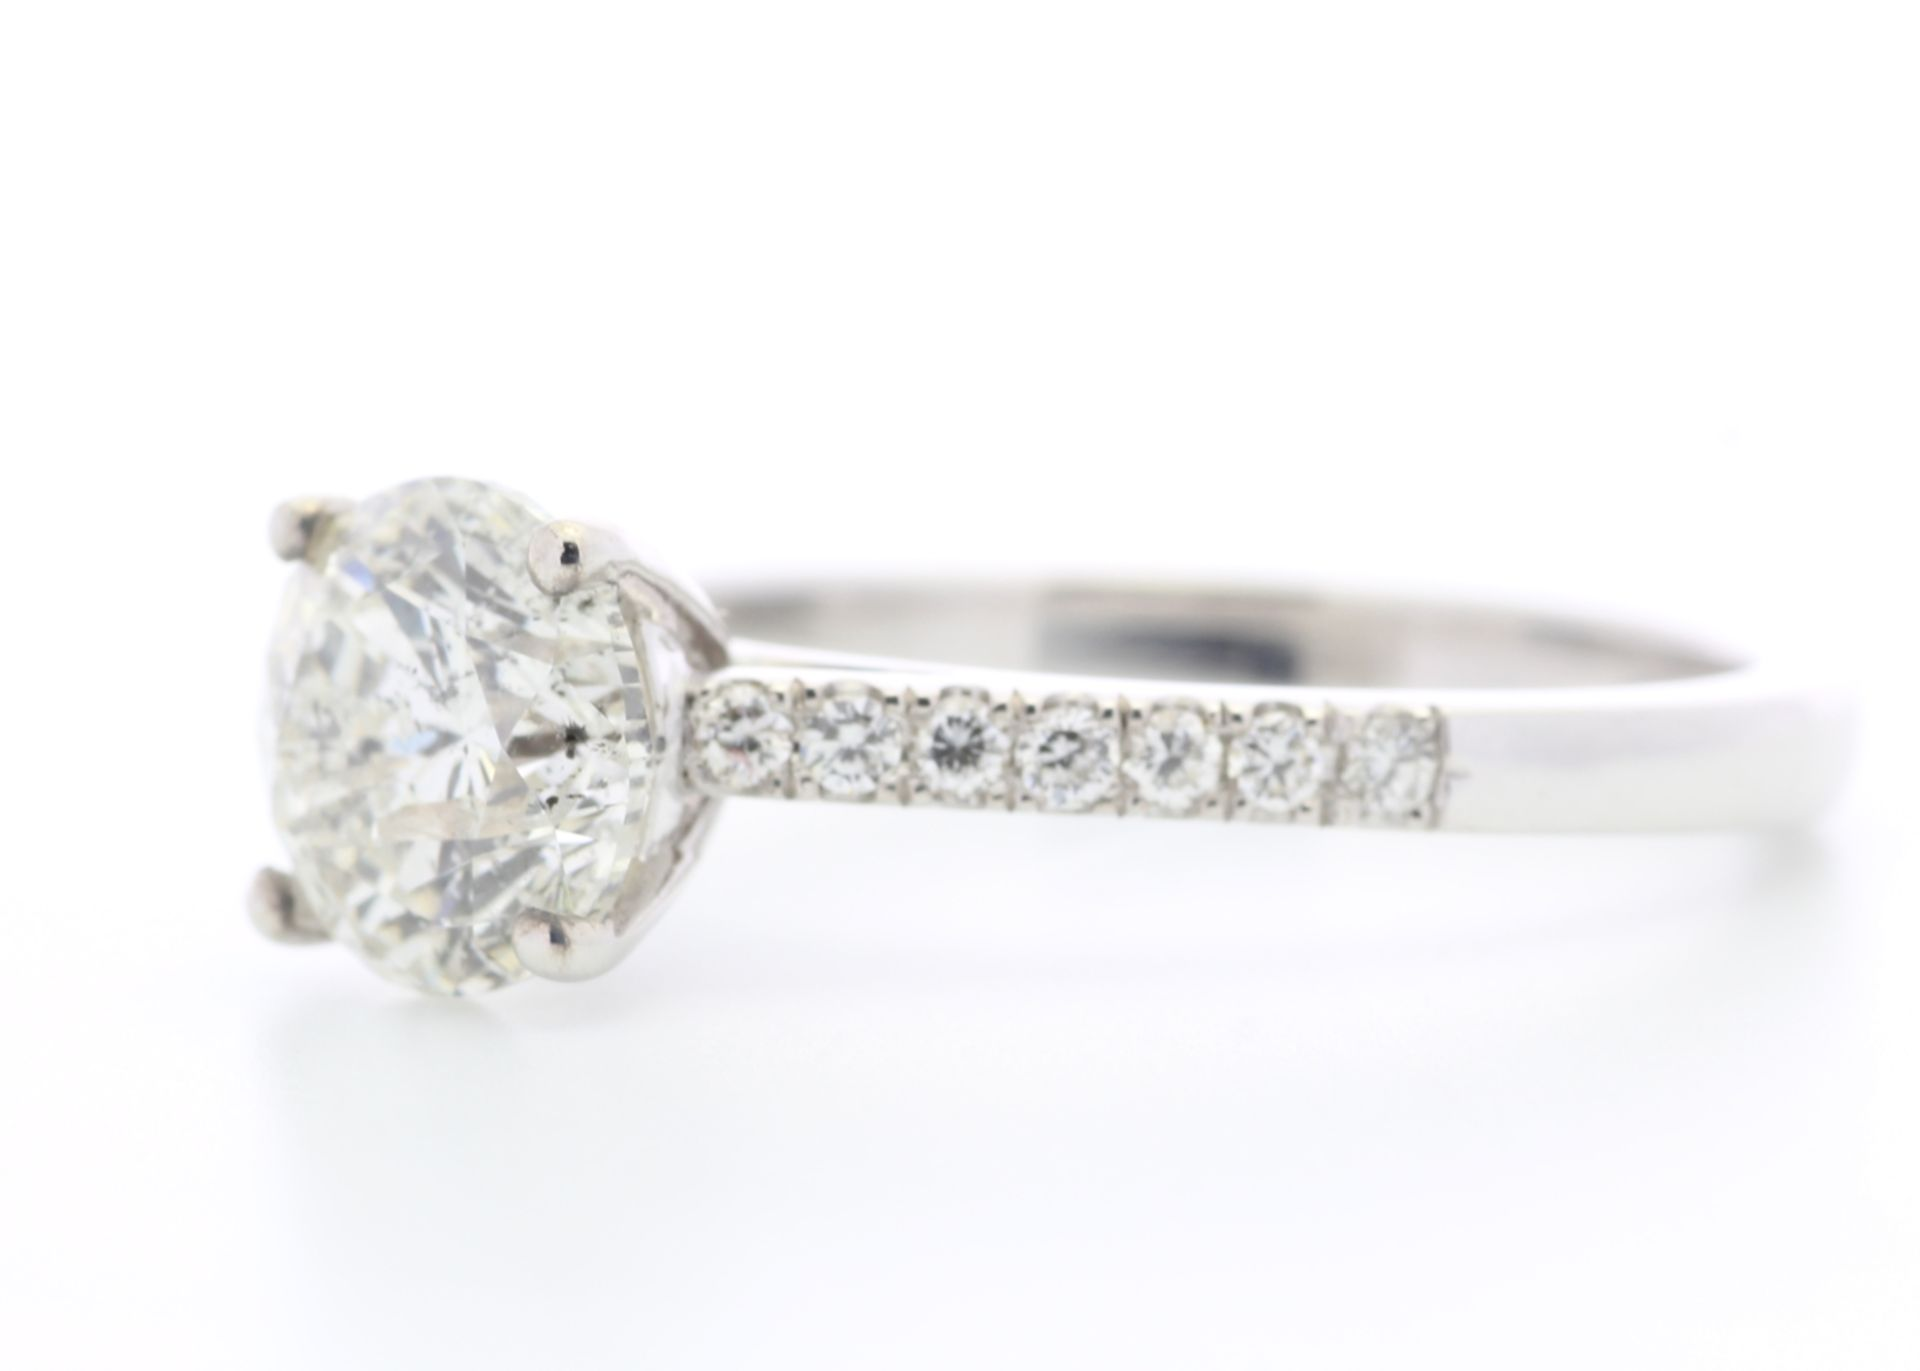 Lot 24 - 18k White Gold Single Stone Claw Set With Stone Set Shoulders Diamond Ring (1.70) 1.87